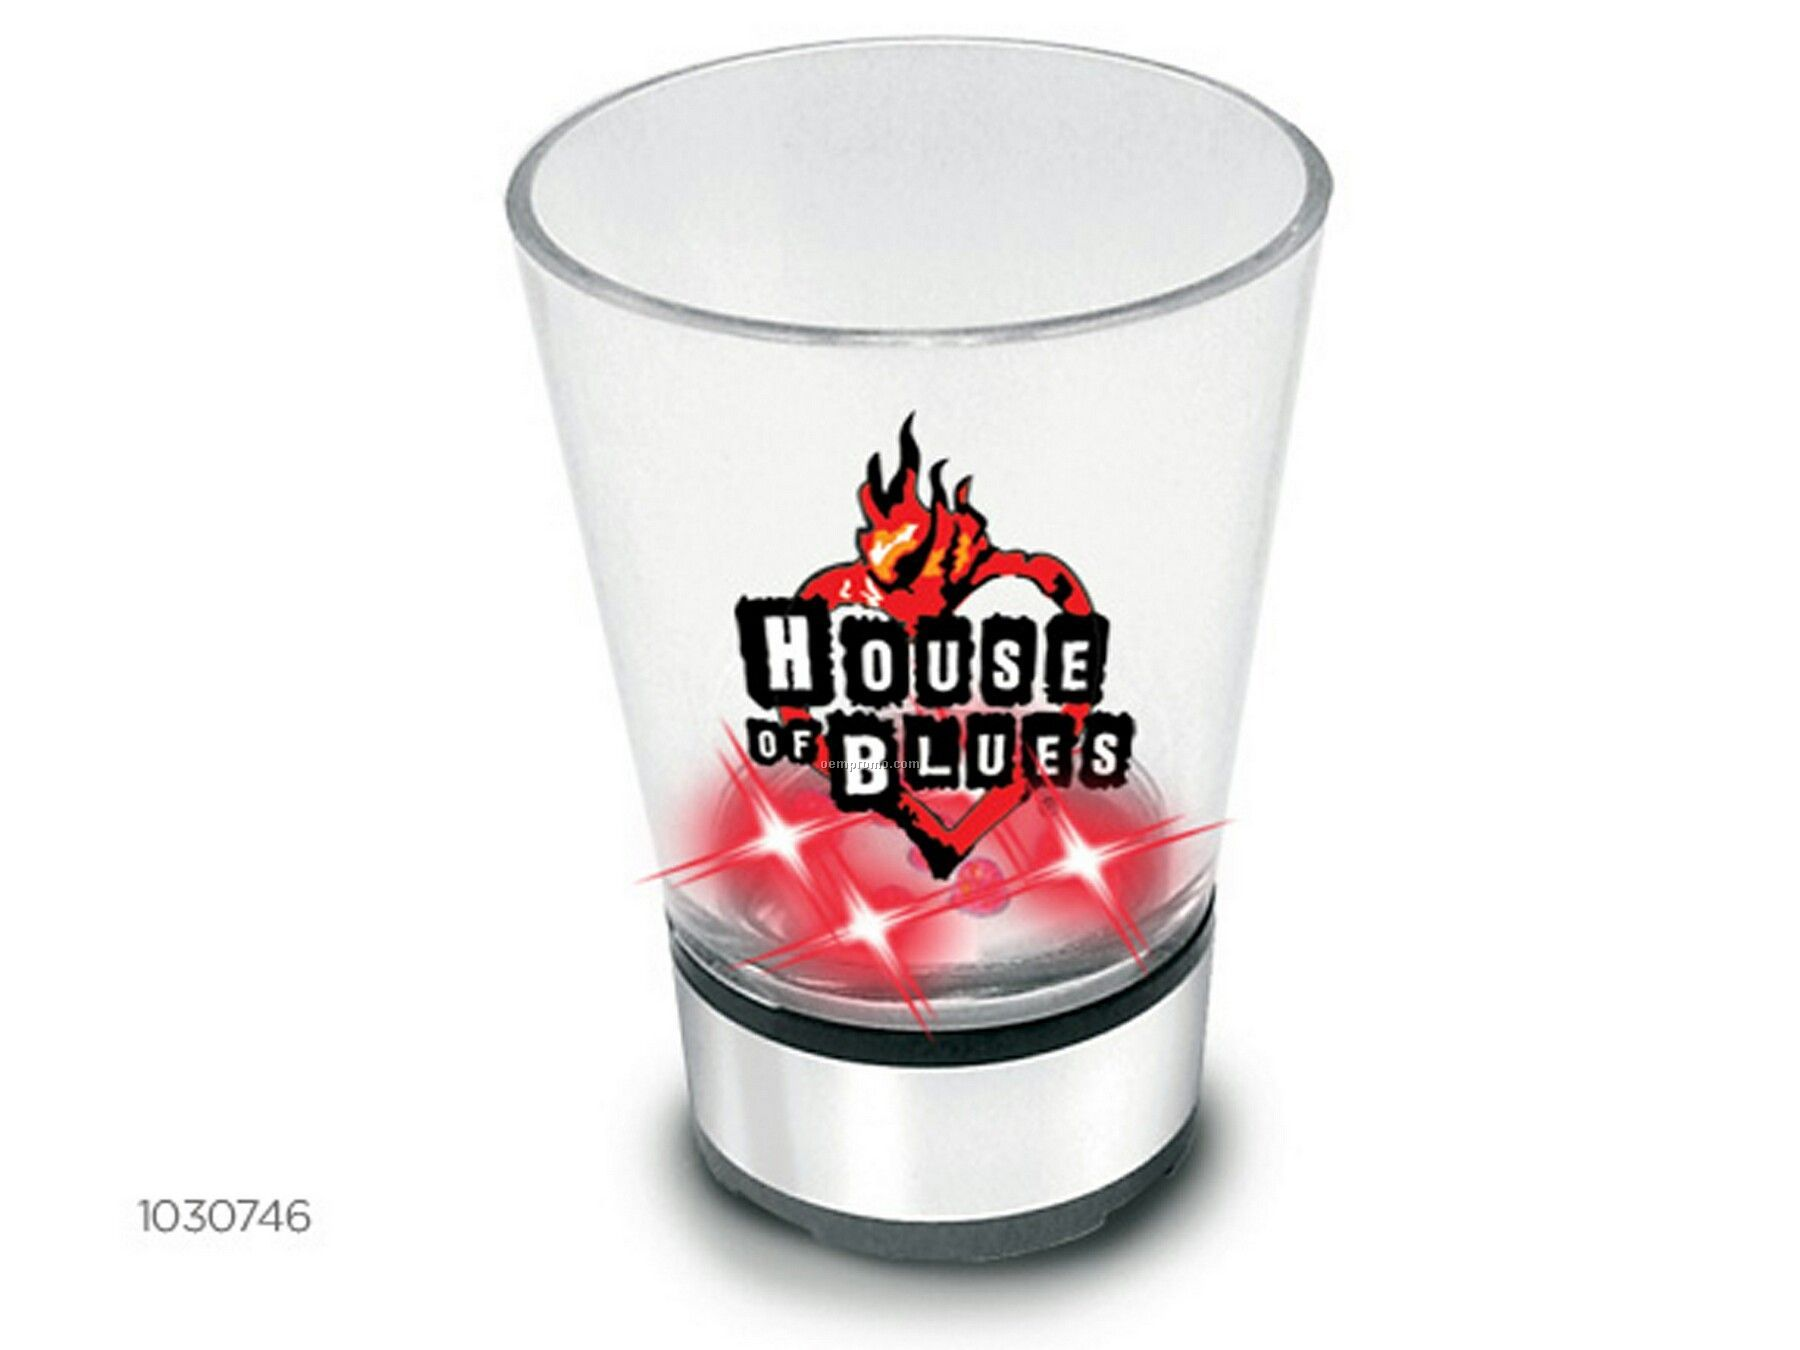 Light Up Plastic Shotlightz With Dice - 1 1/4 Oz. With Red Leds And Sound